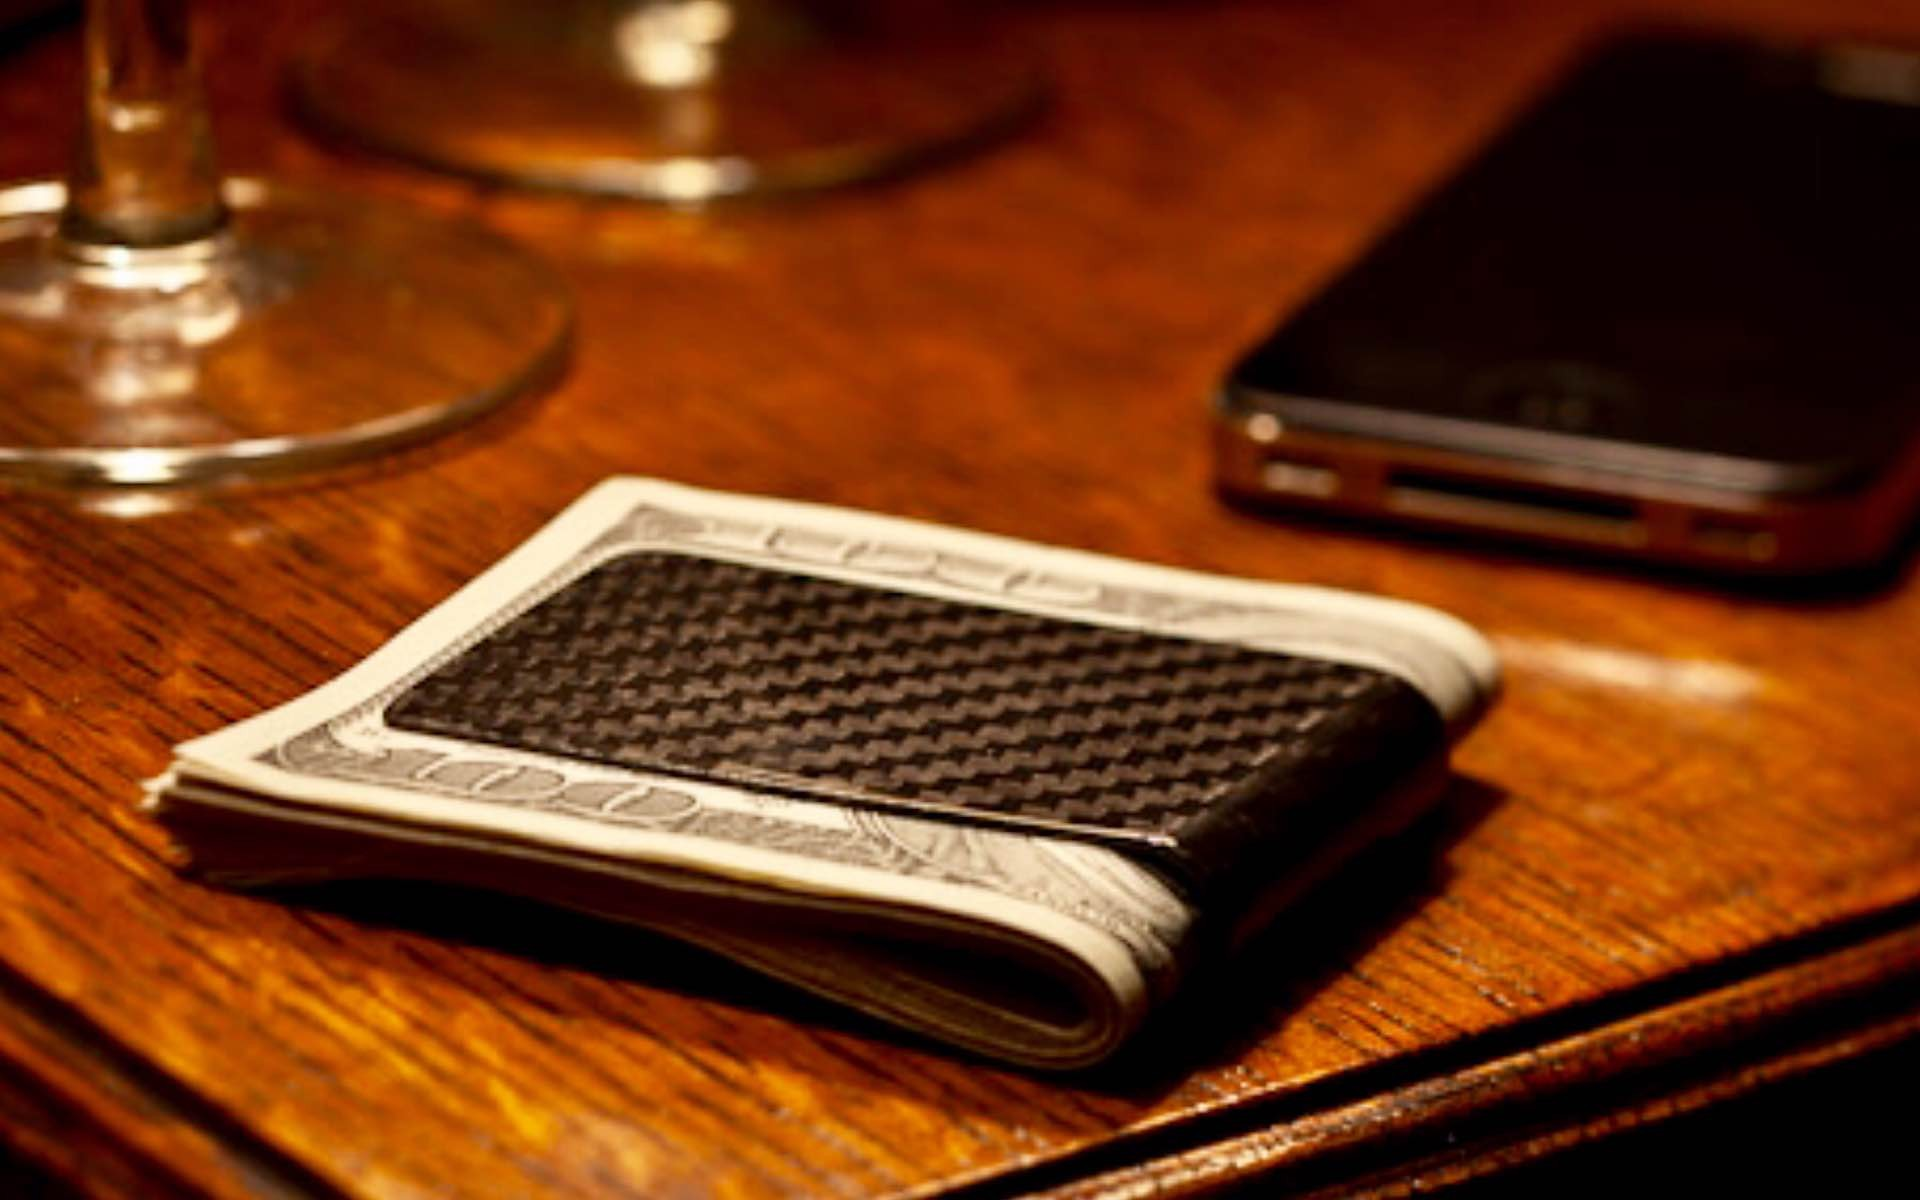 Carbon Fiber Designs' Koolstof money clip. ($40 for a limited time, normally $60)